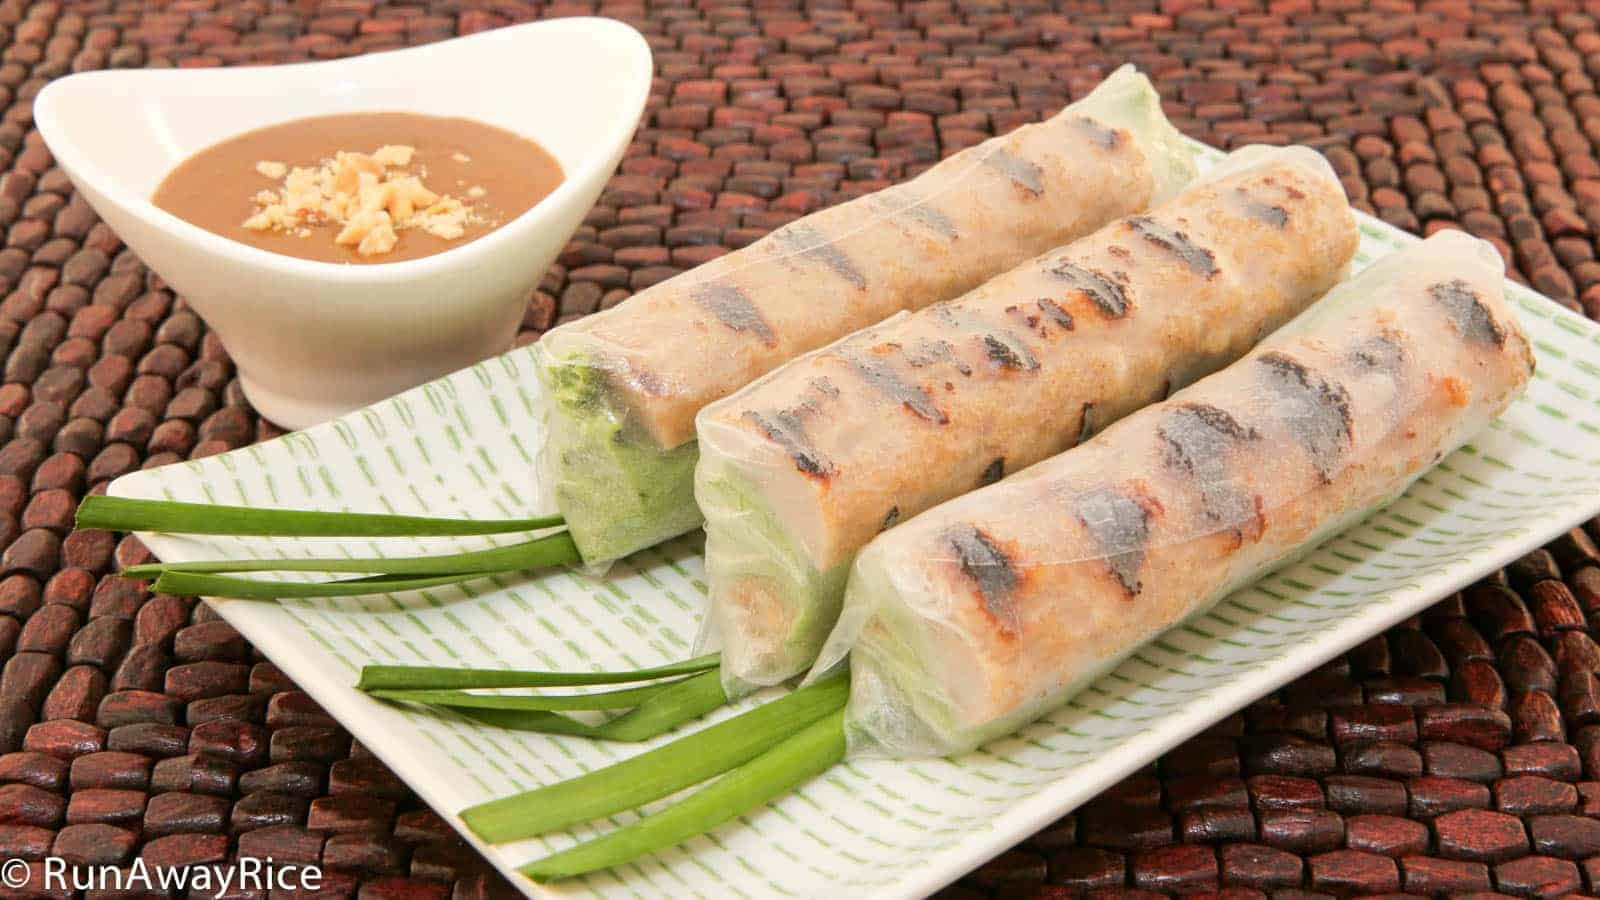 Grilled pork sausage and vermicelli summer rolls